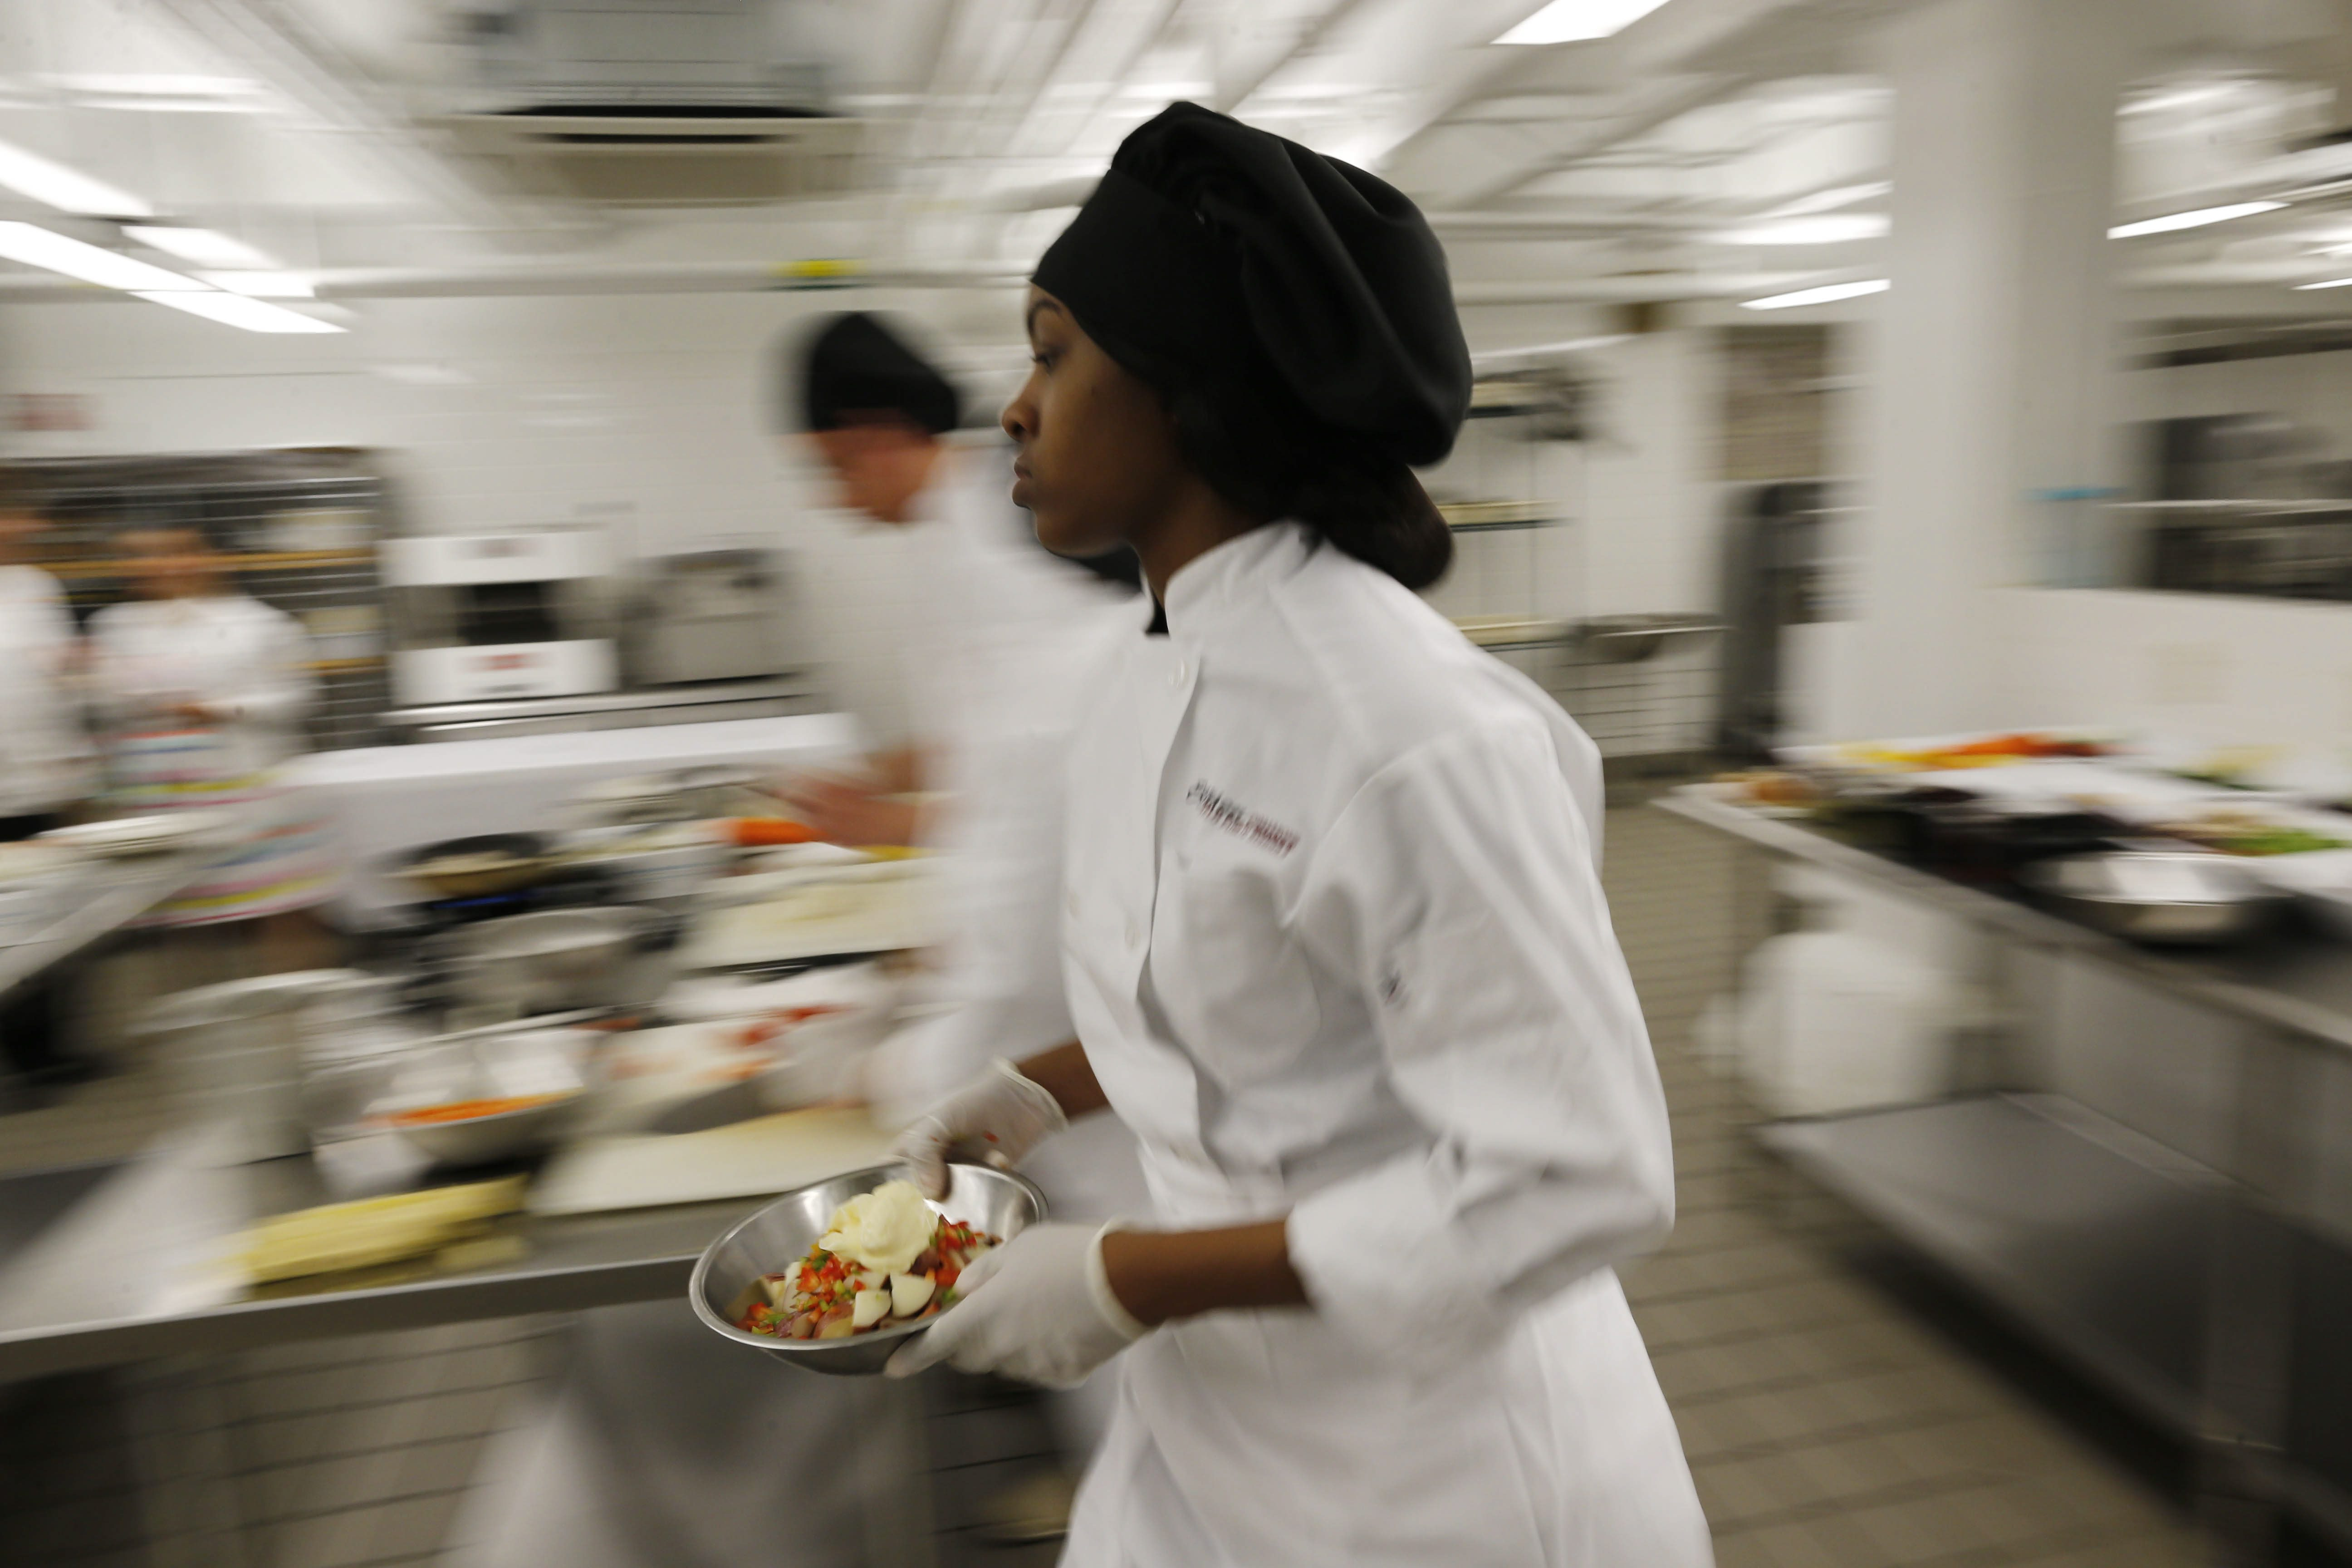 Emerson School of Hospitality junior Da'Vyne Brown rushes back to her station with ingredients while competing in an 'Iron Chef' style cooking competition in June 2016. Developers hope to win a bid with Buffalo Public Schools to develop a second culinary schoool in downtown Buffalo. (Derek Gee/Buffalo News file photo)